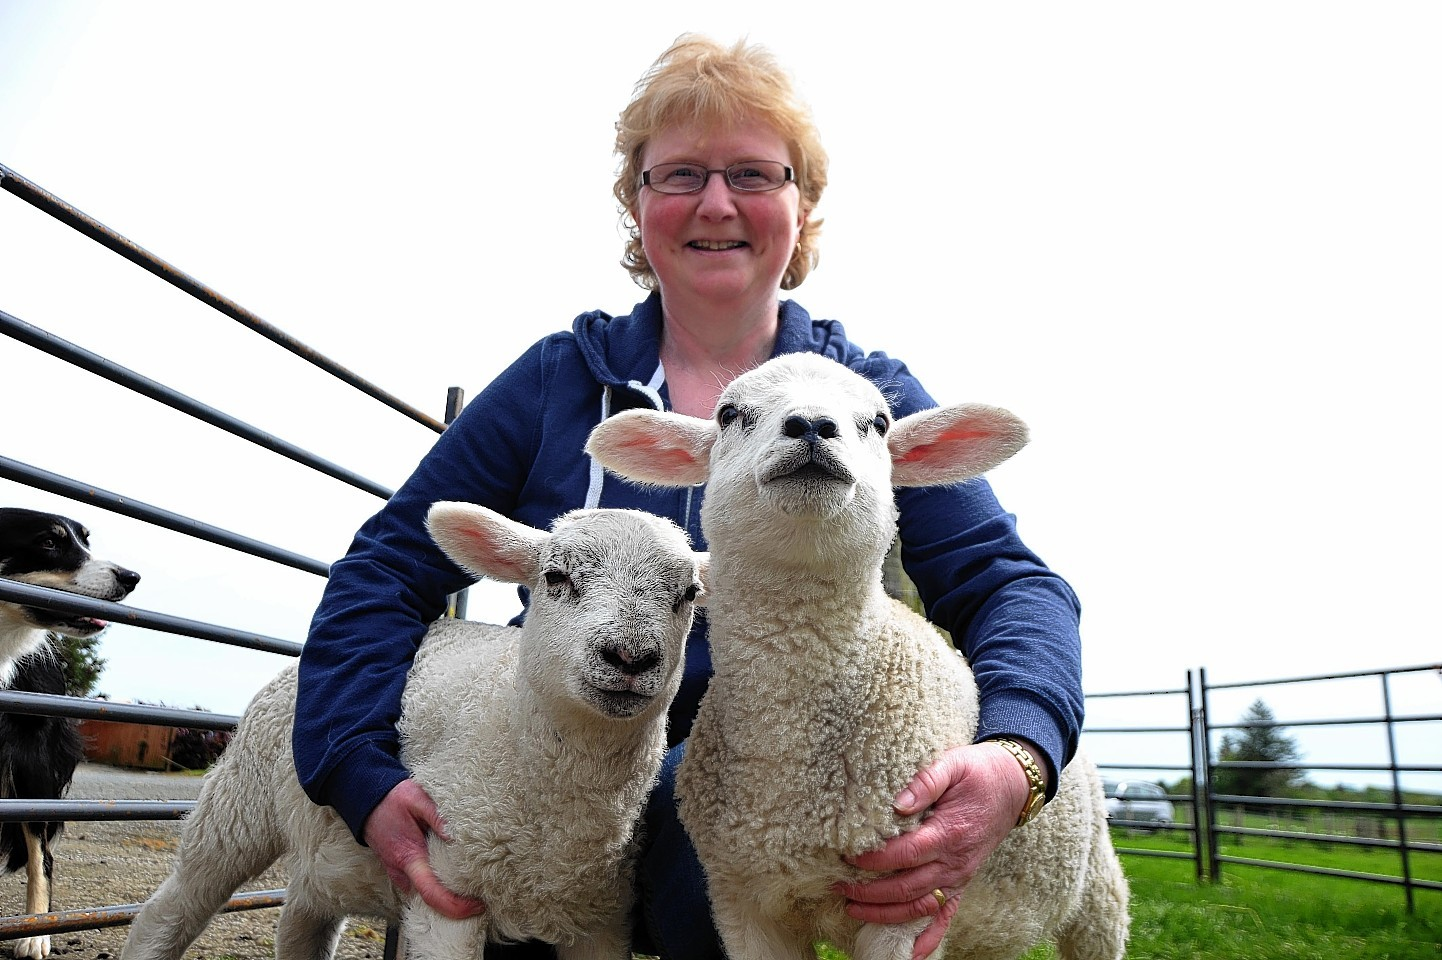 Loraine Allan reunited with her stolen lambs